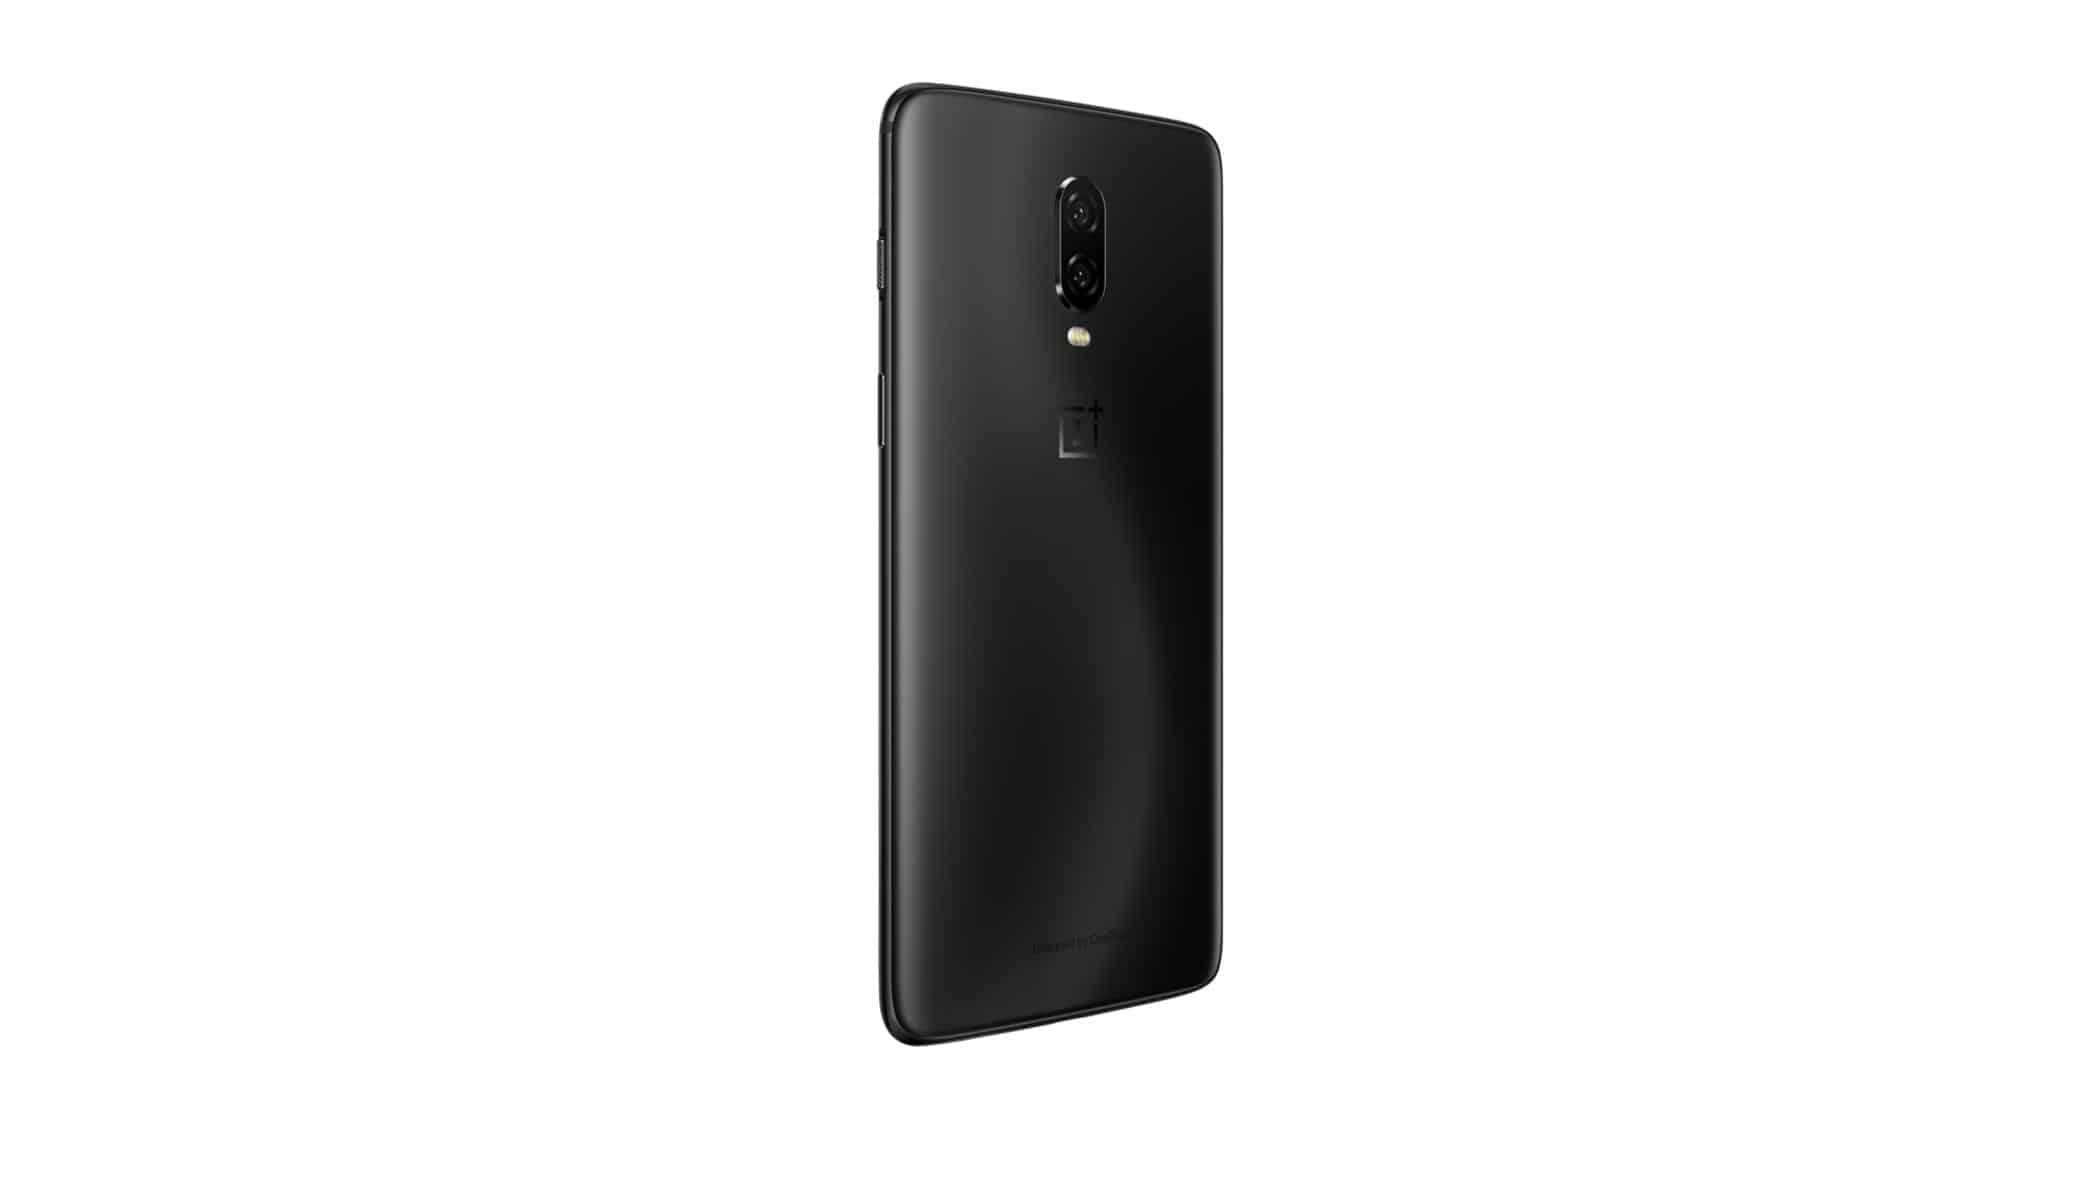 OnePlus 6T Official Product Render 2